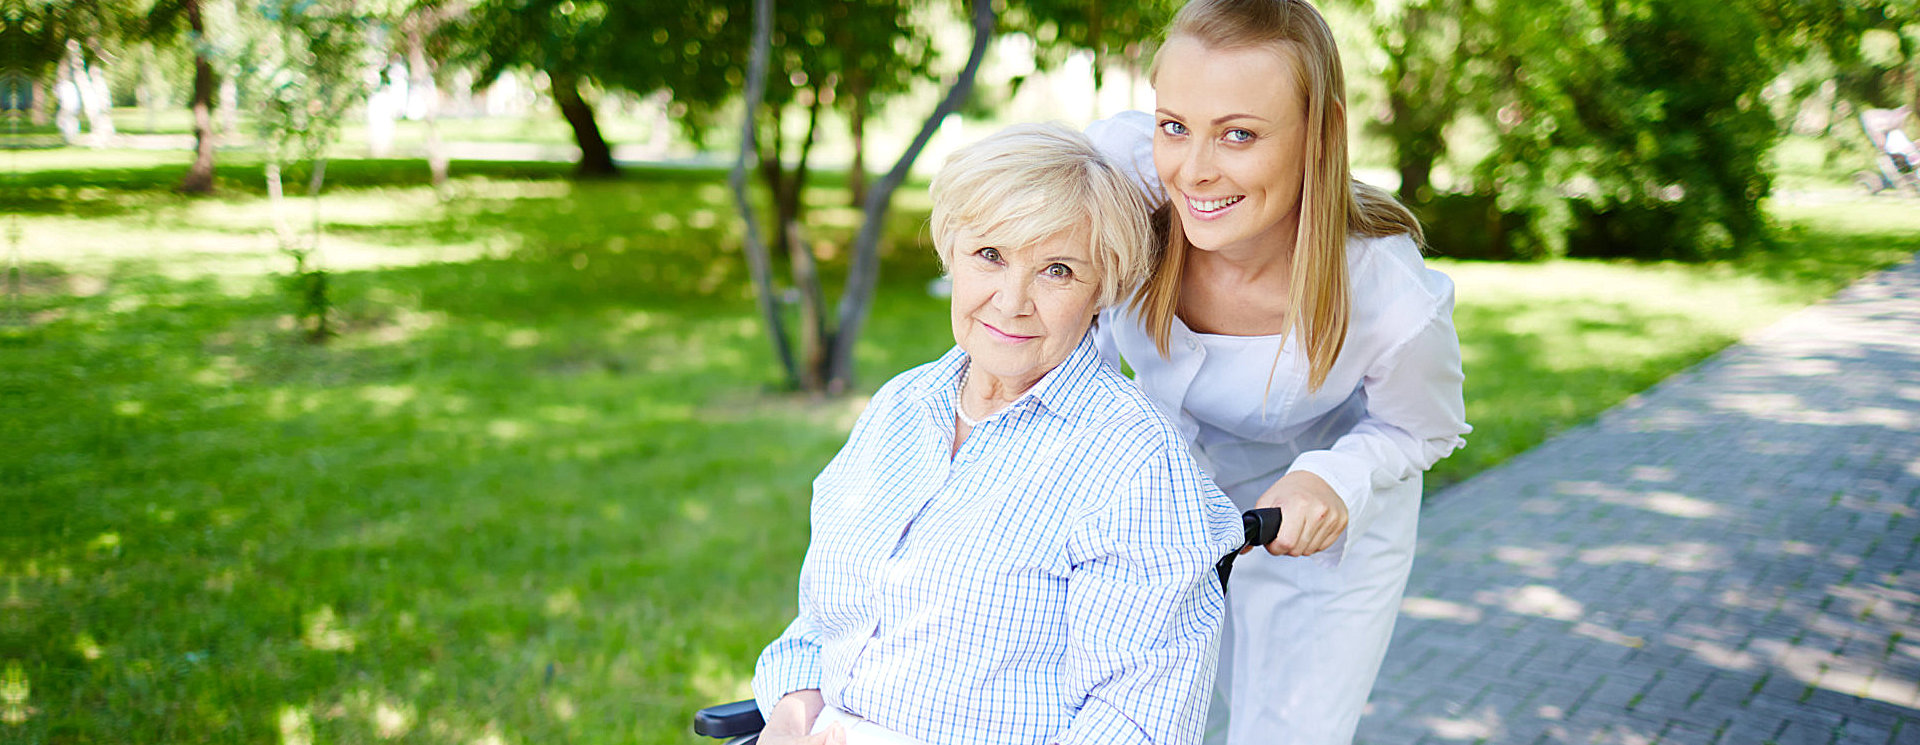 caregiver with her patient strolling in the park